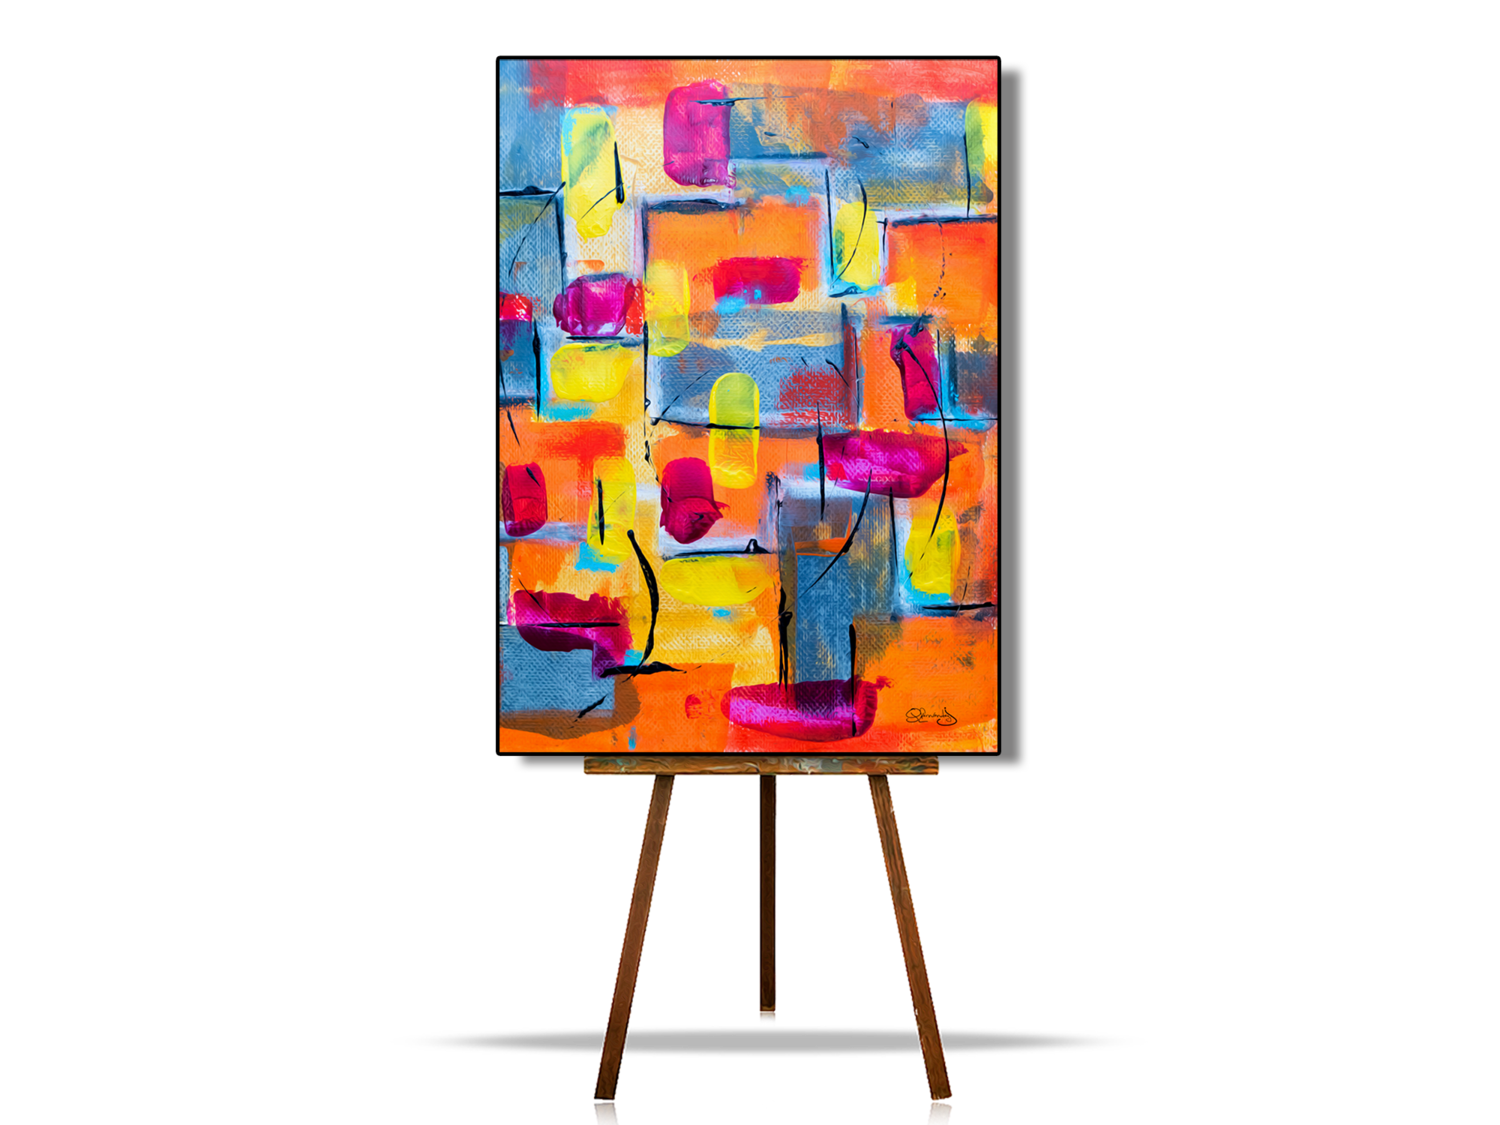 Geometric Abstract Wall Art, Abstract Home Decor Wall Art, Abstract Canvas Wall Art Prints, Affordable Canvas Art & Prints, Abstract Painting, Abstract Art, Contemporary Art, Abstract Canvas Art Ideas